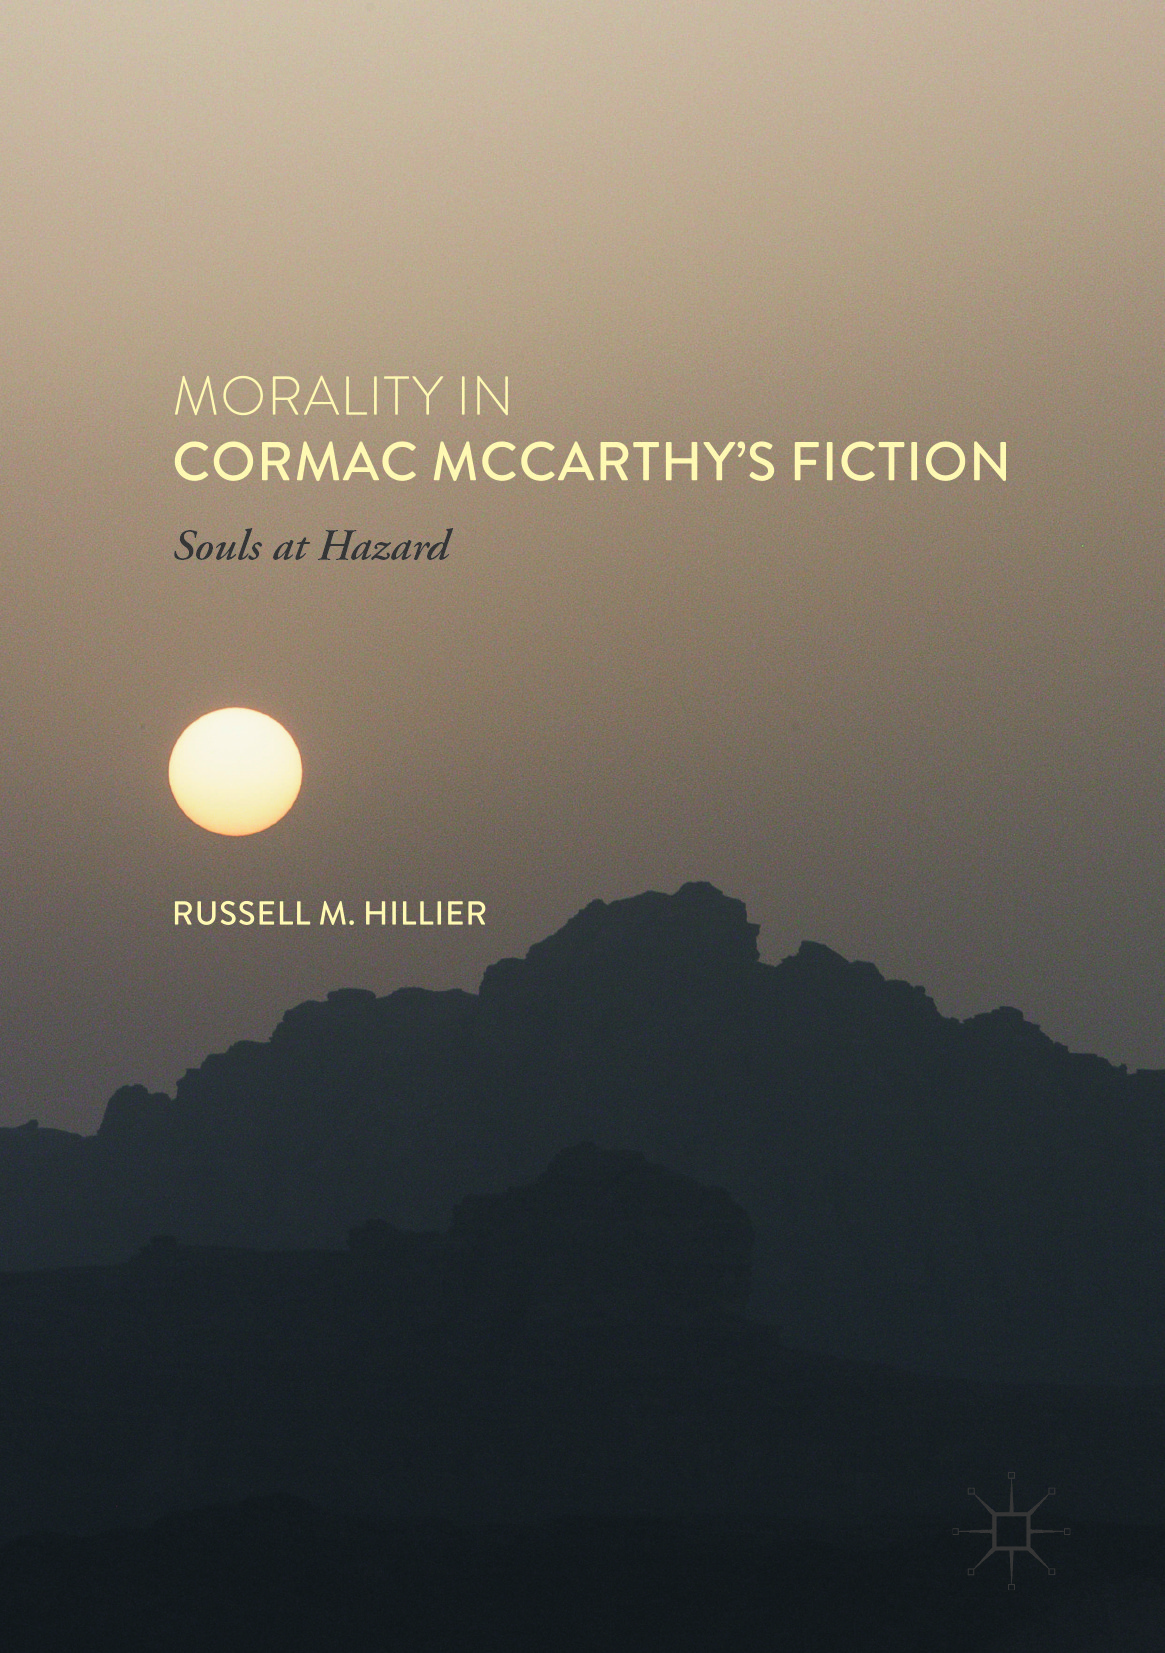 Hillier, Russell M. - Morality in Cormac McCarthy's Fiction, ebook